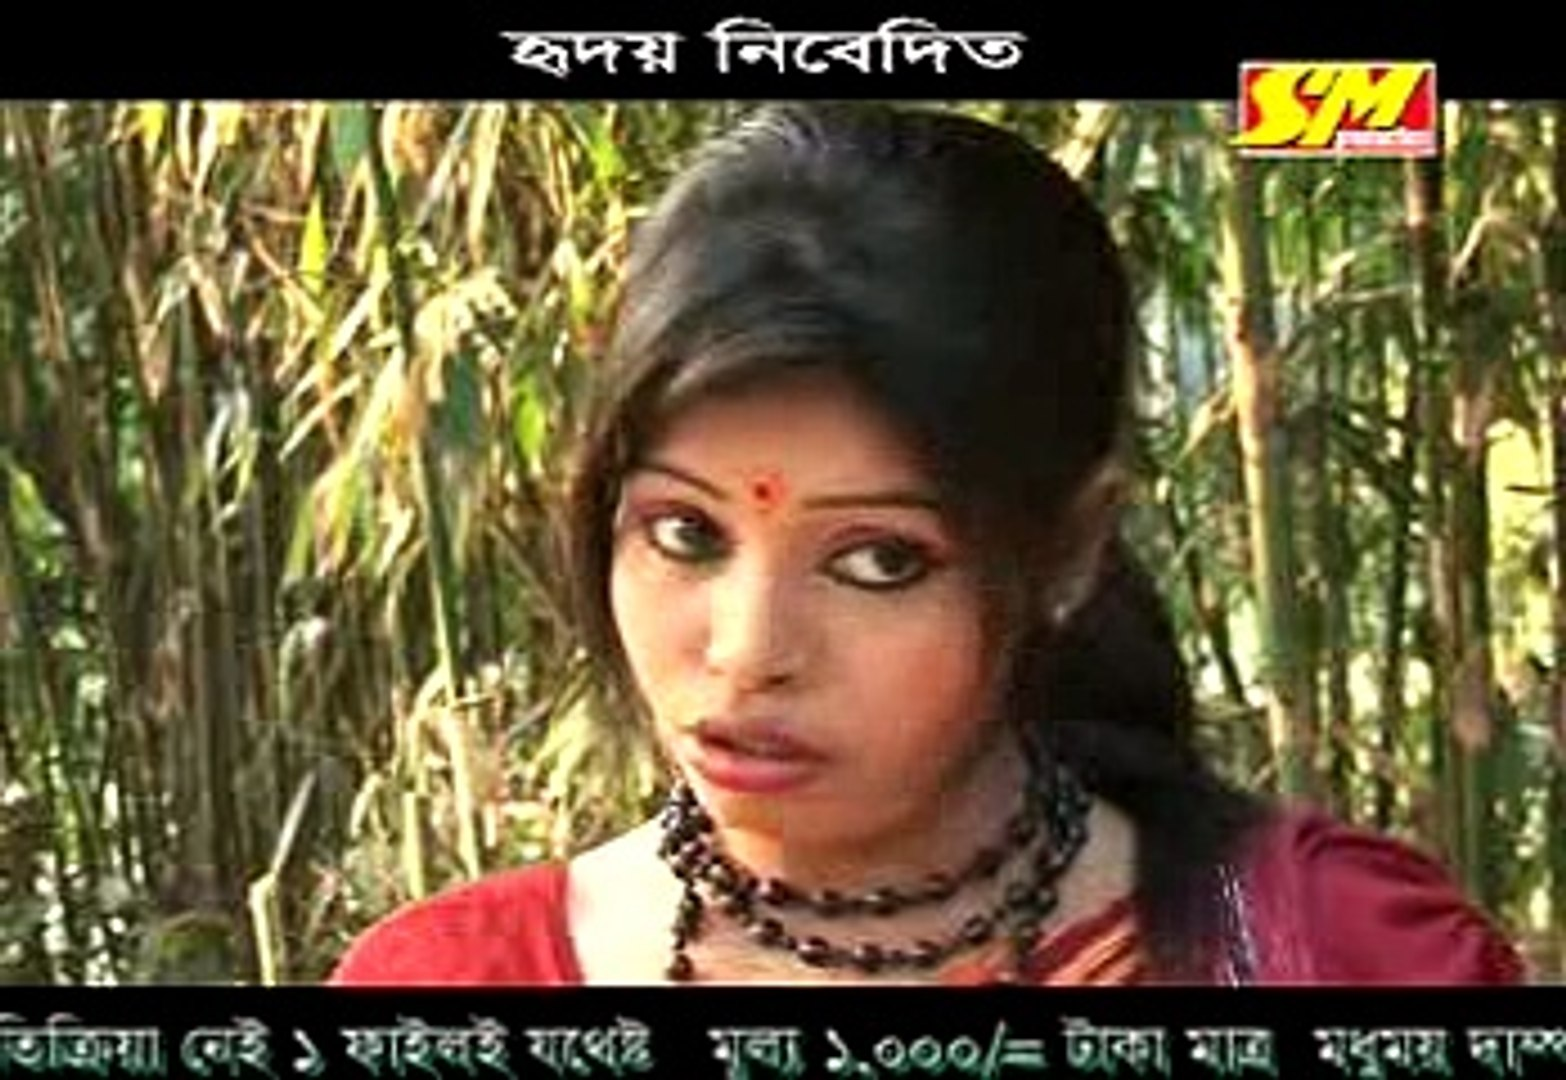 ও লায়লা - O Layla | Bangla Music video | Binodon Net BD